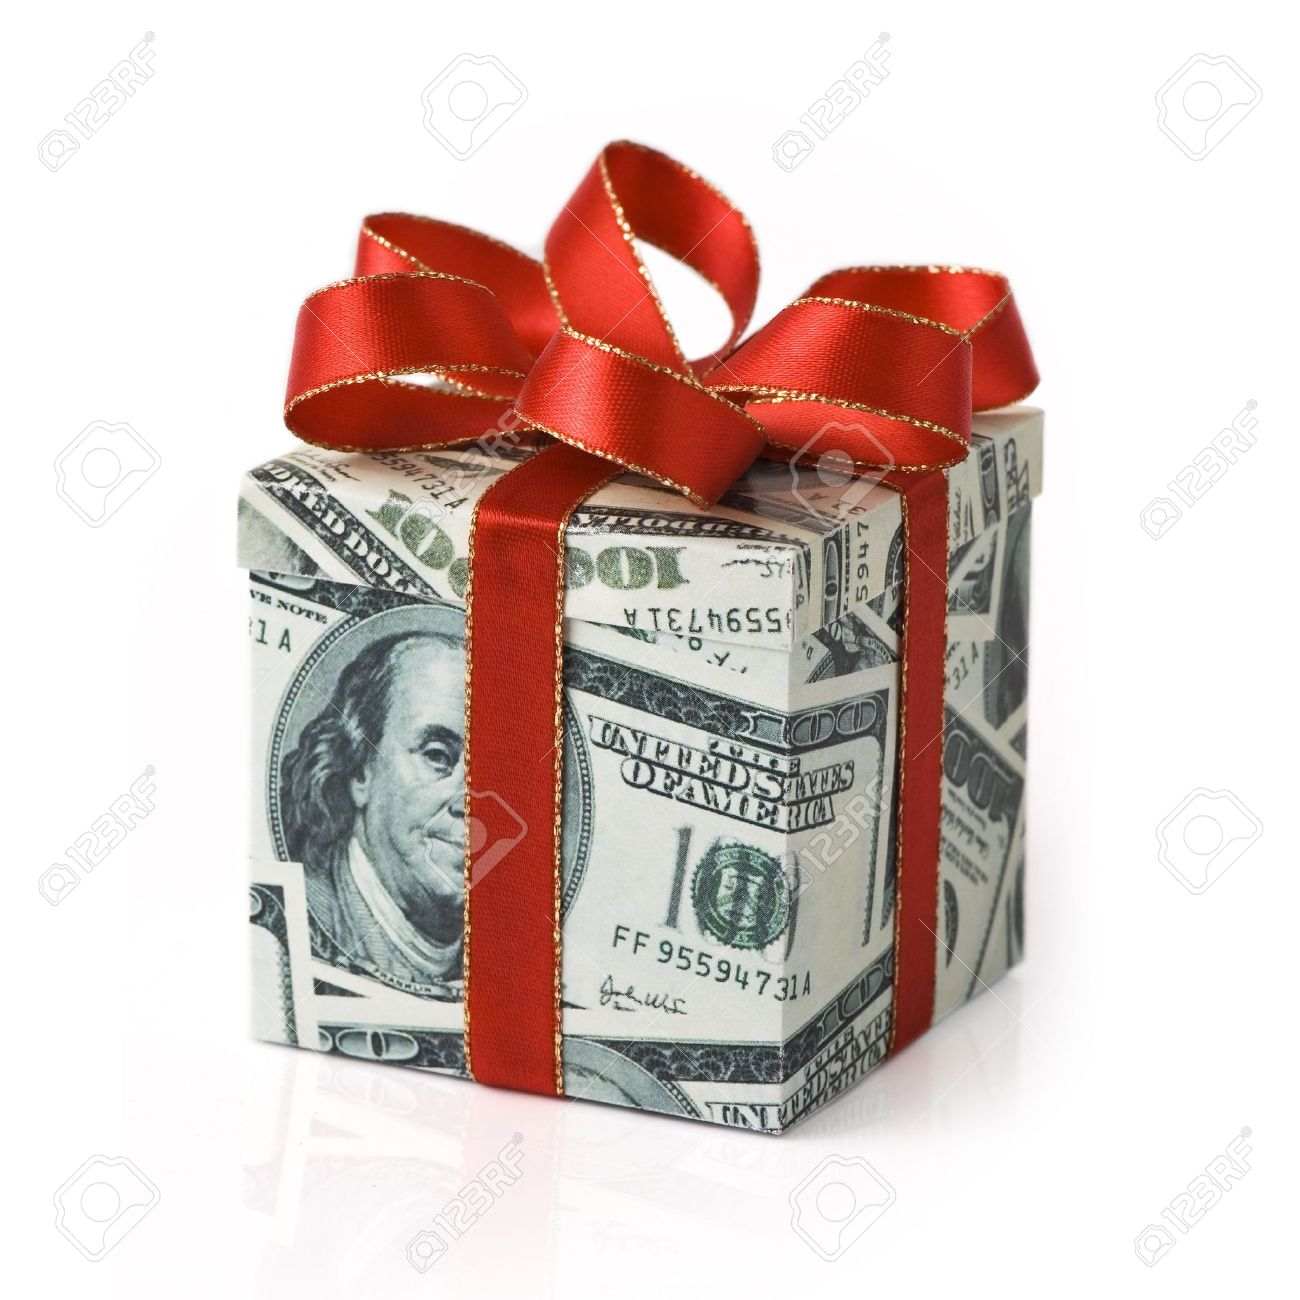 A gift box covered in US money with red colored ribbon applied Stock Photo - 20902642